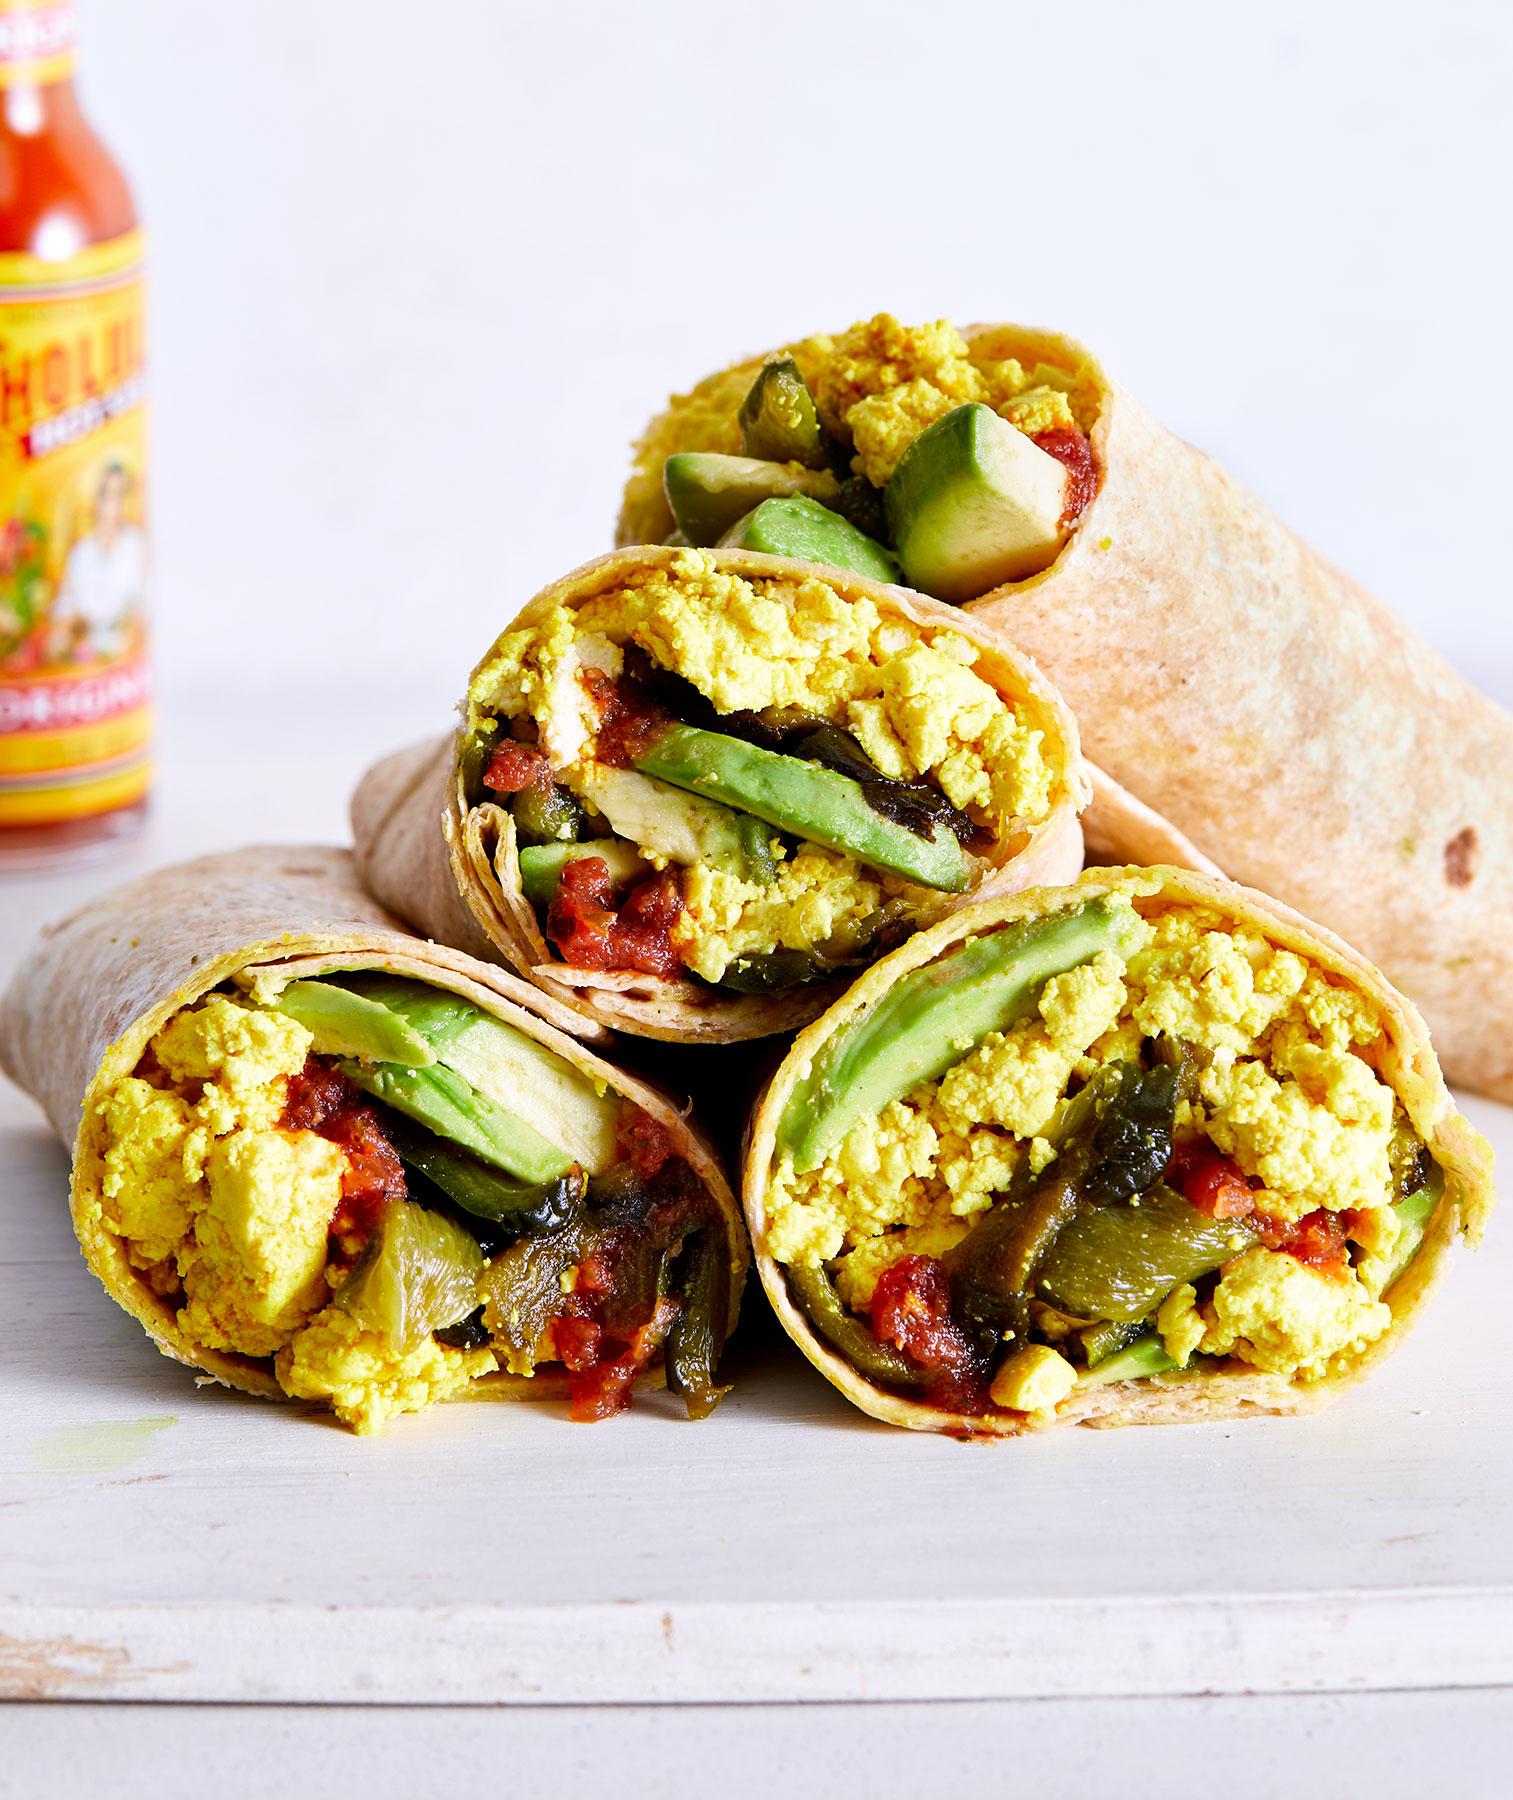 Vegan Breakfast Burrito With Tofu Scramble